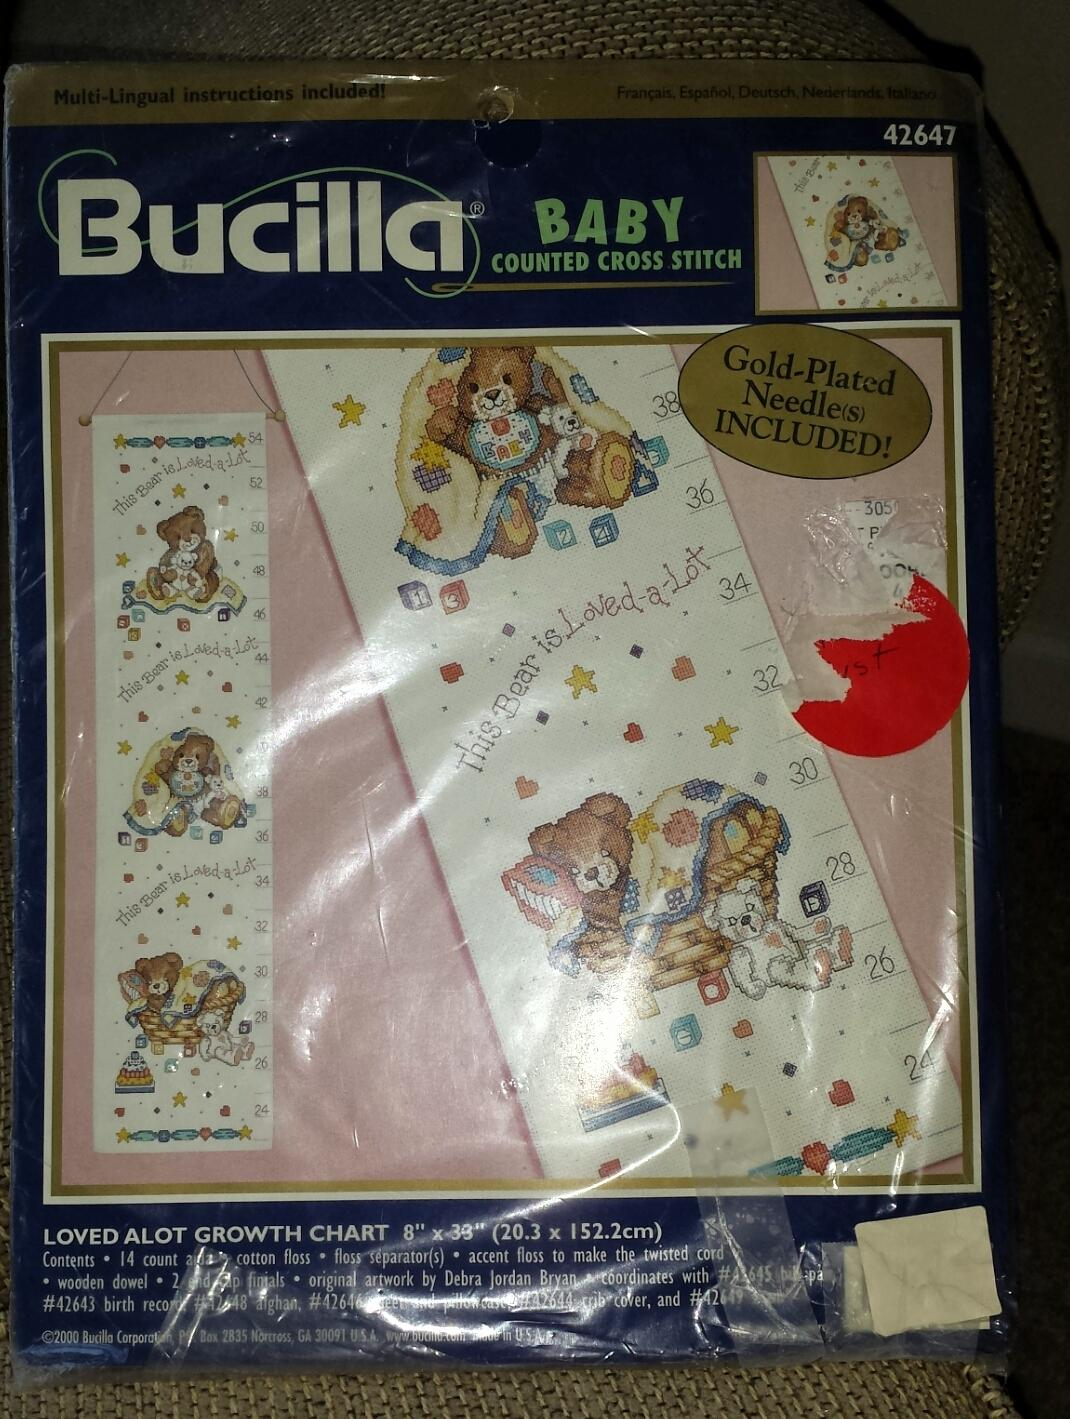 Best Loved Alot Growth Chart Counted Cross Stitch Kit For Sale In